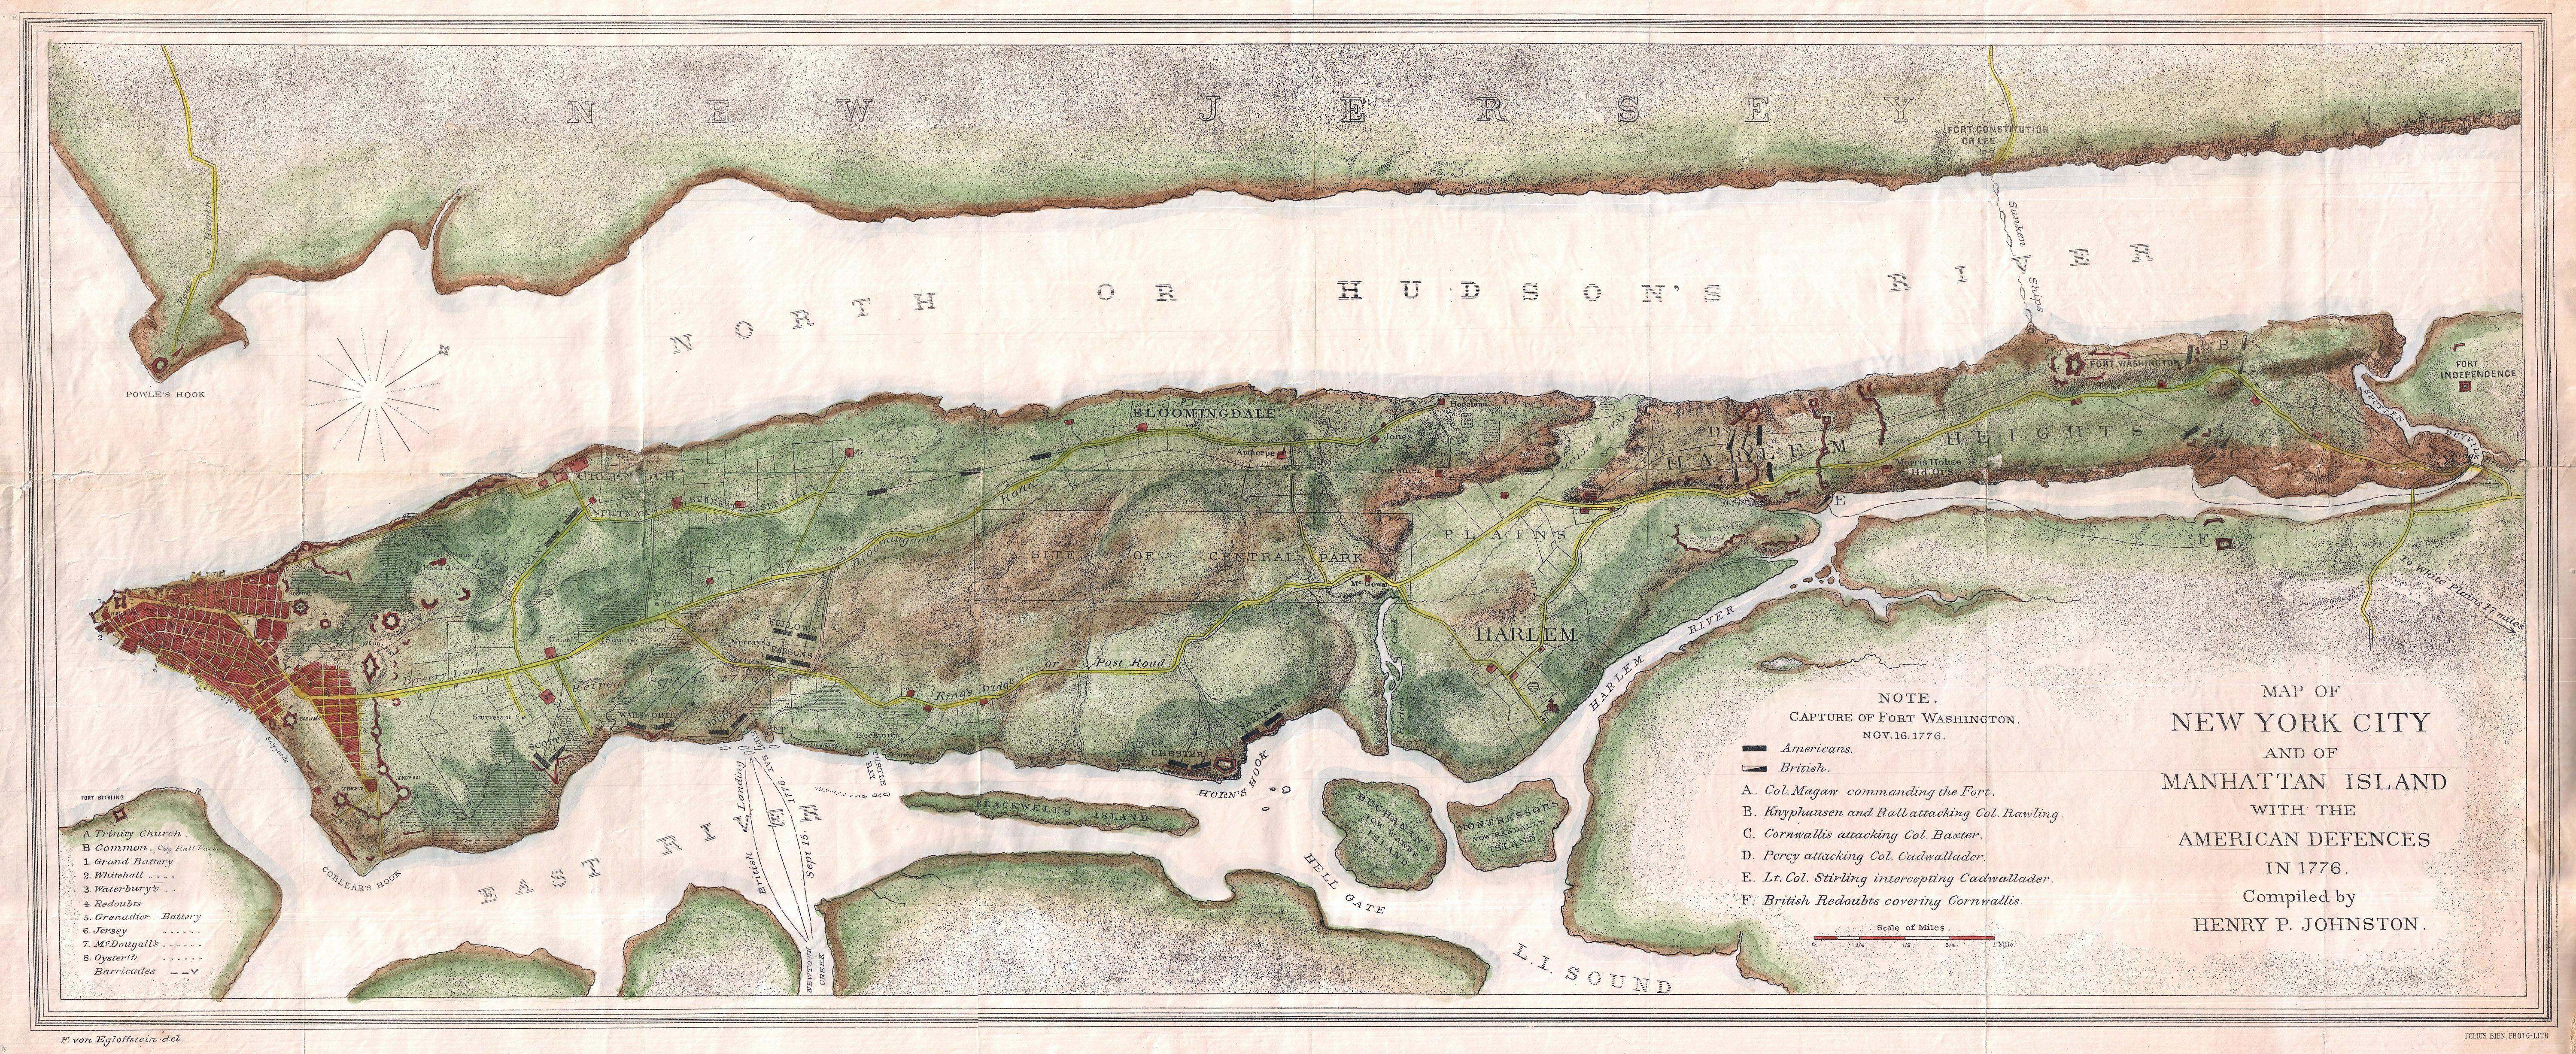 Large Detailed Map Of New York City And Of Manhattan Island With - New york city elevation map